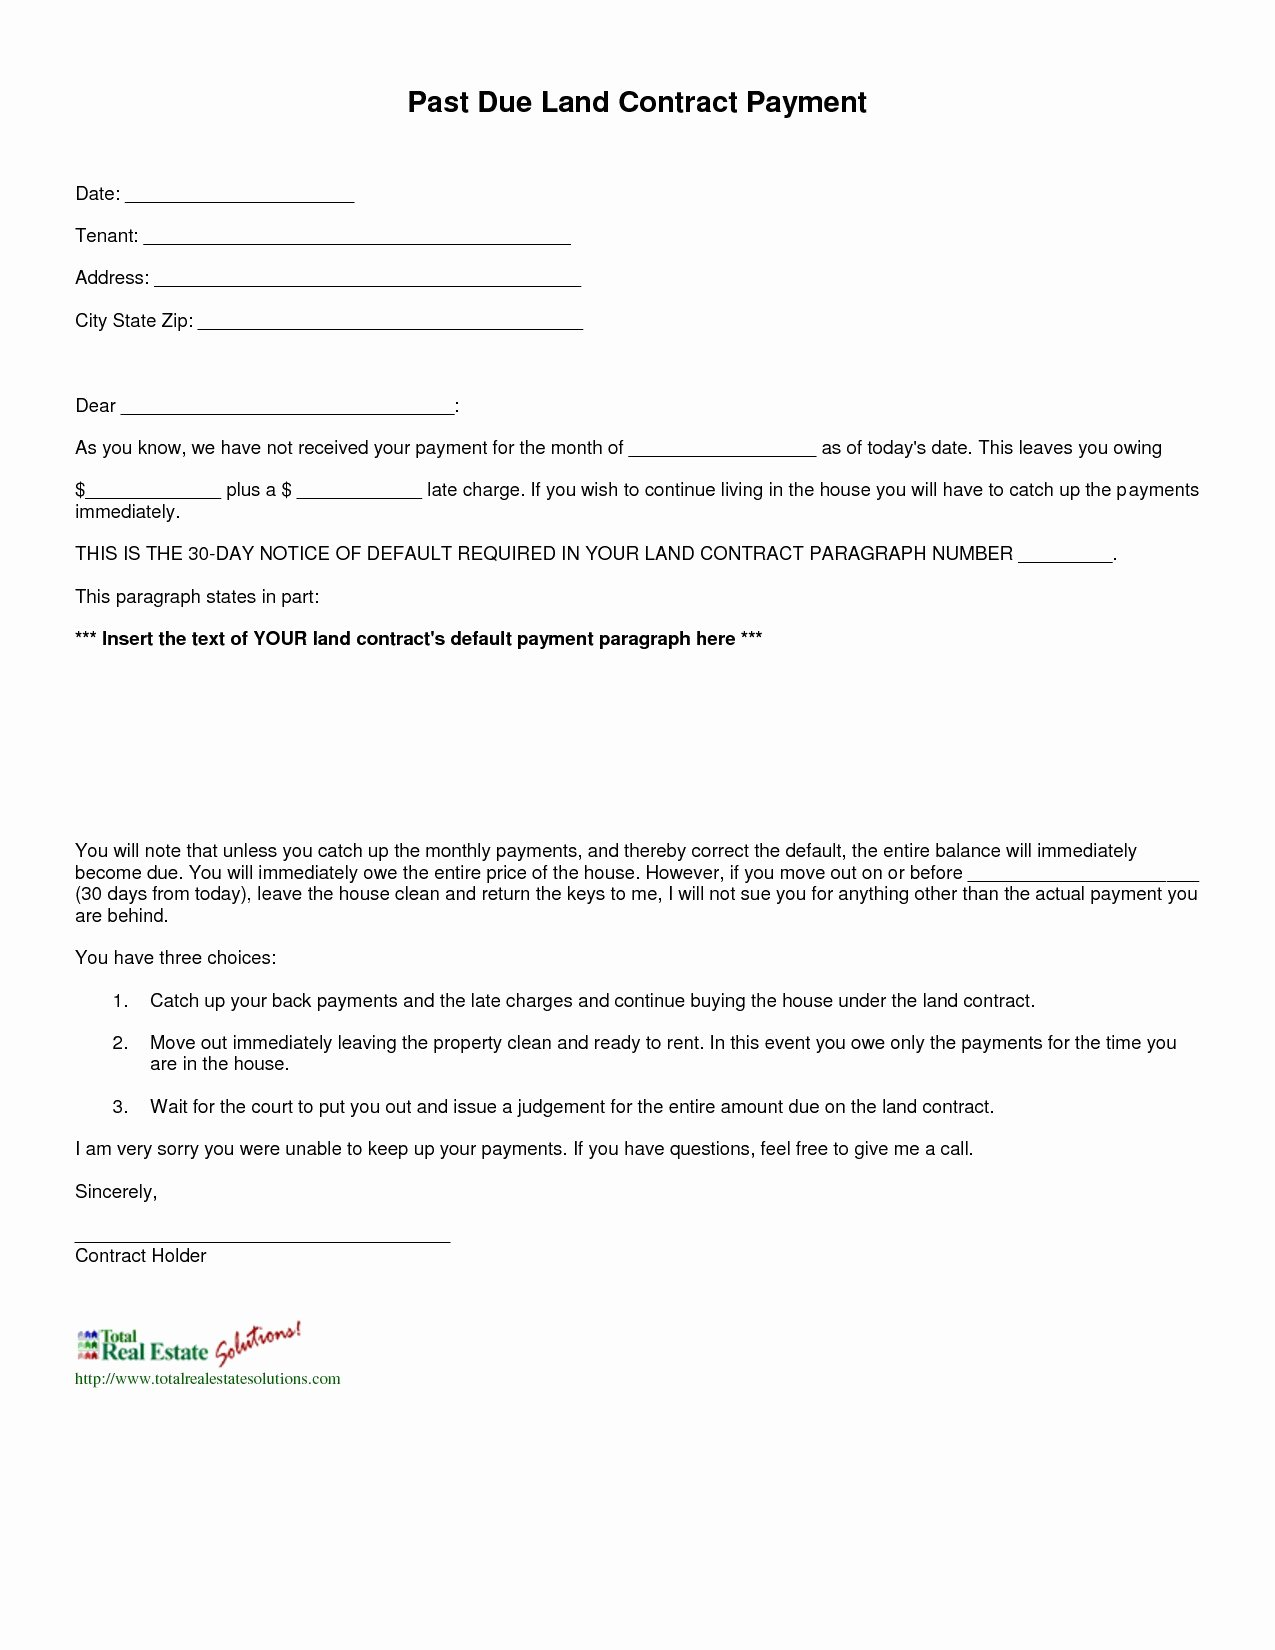 Past Due Rent Letter Luxury Late Rent Payment Letter Elegant 19 New Late Payment